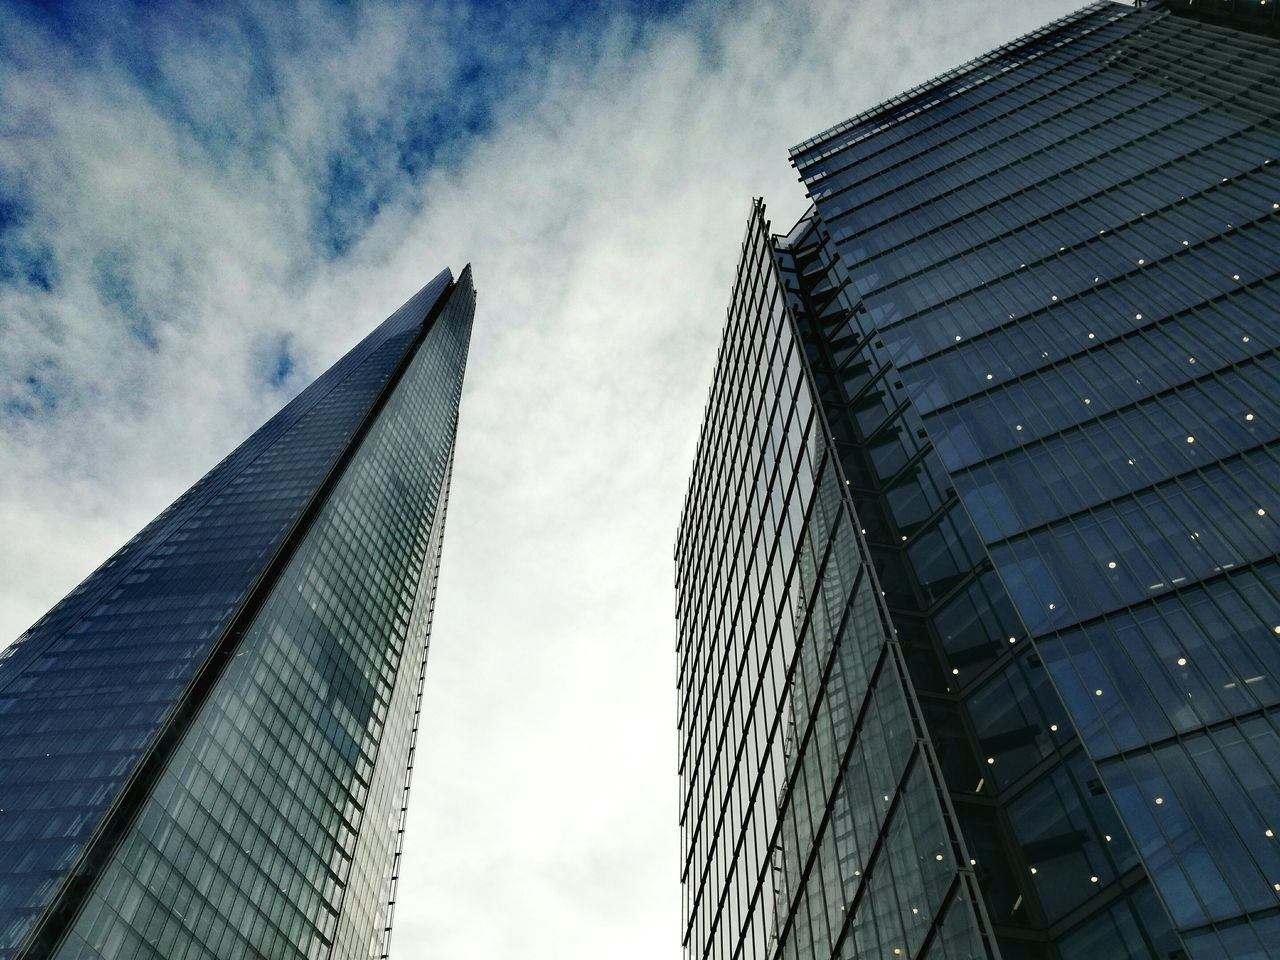 London Lifestyle Architecture Sky Outdoors London Hollidays Erasmus The Shard, London City Modern